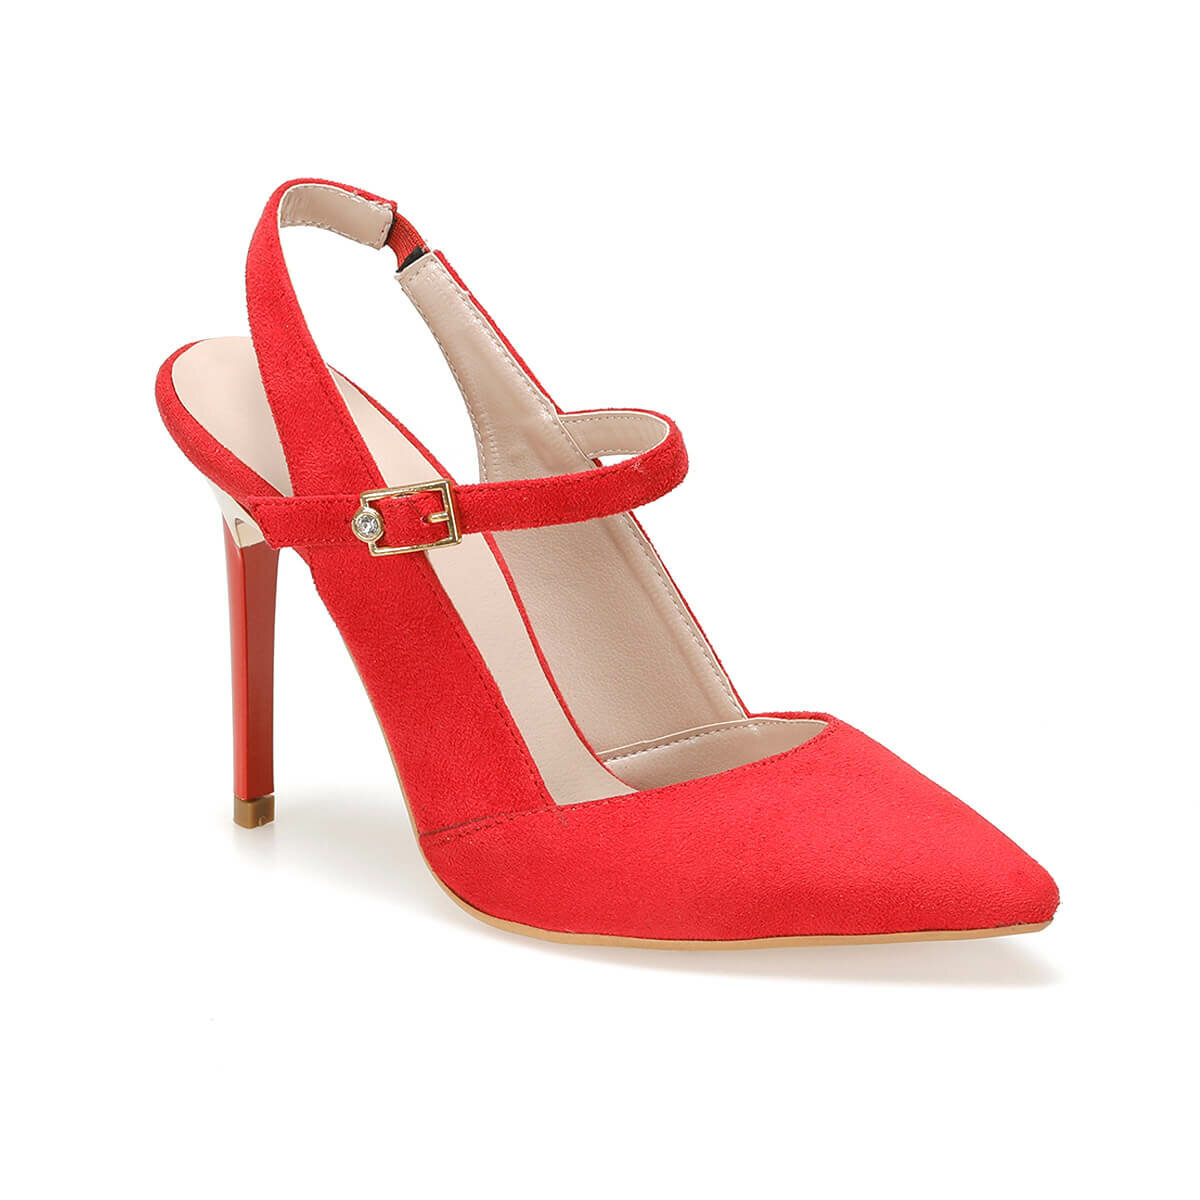 FLO 19S-513 Red Women 'S Shoes BUTIGO